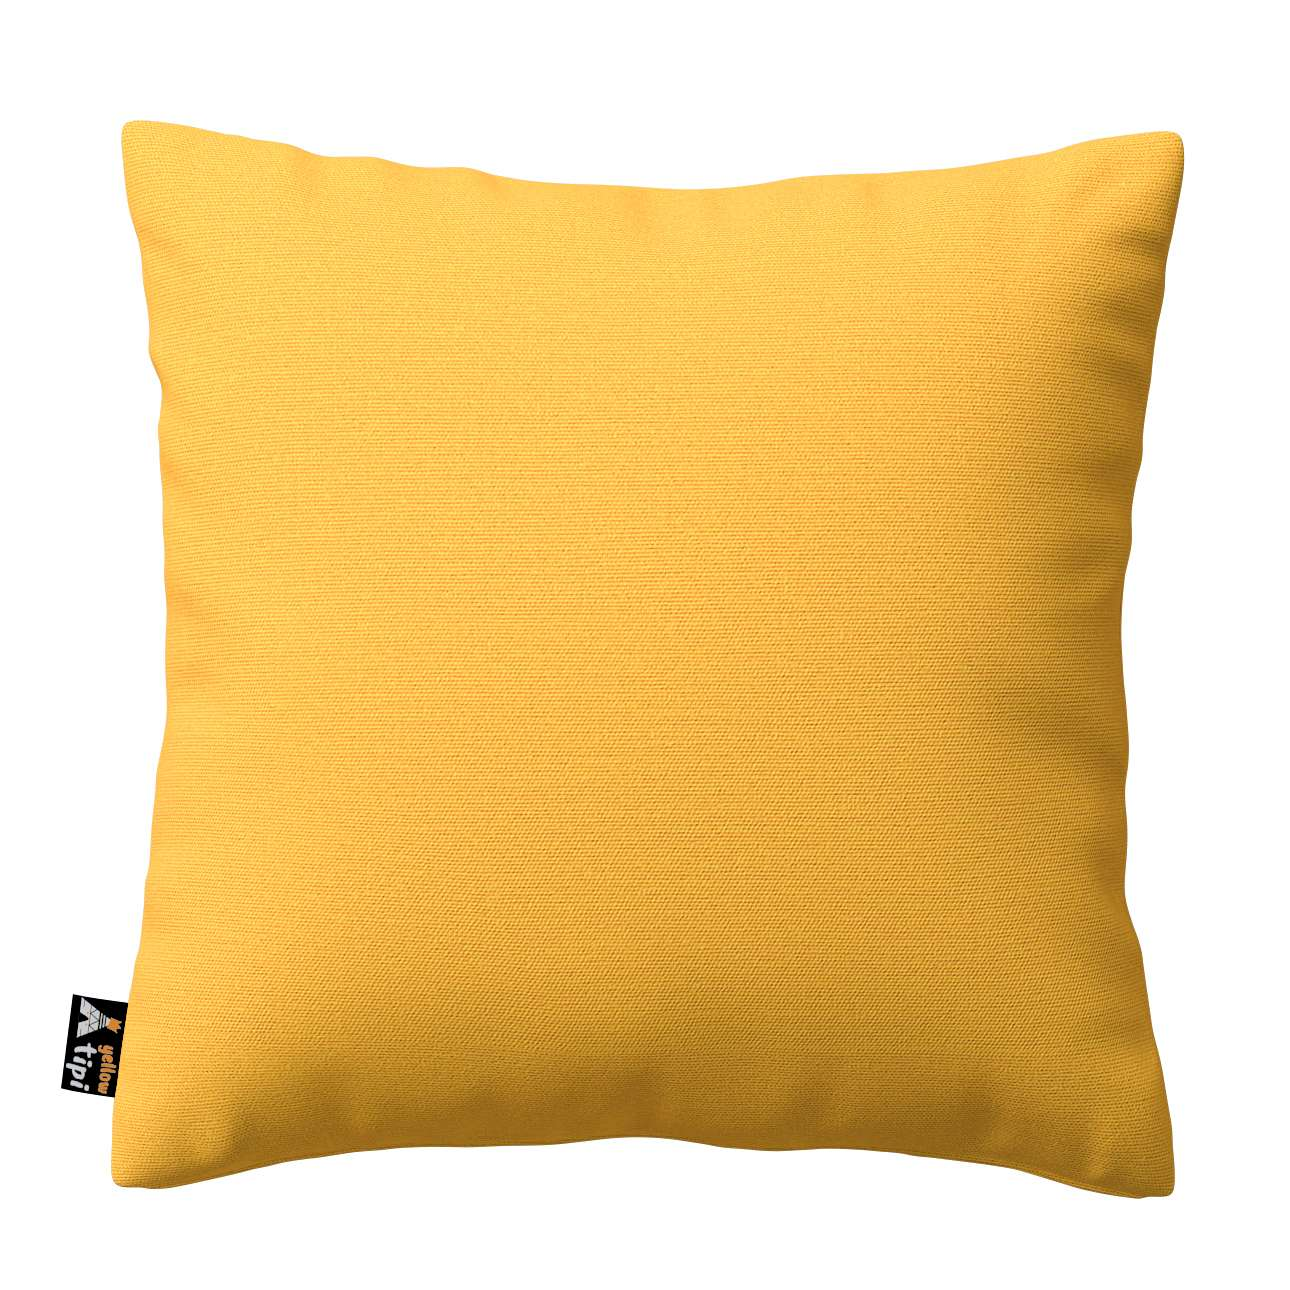 Milly cushion cover in collection Happiness, fabric: 133-40